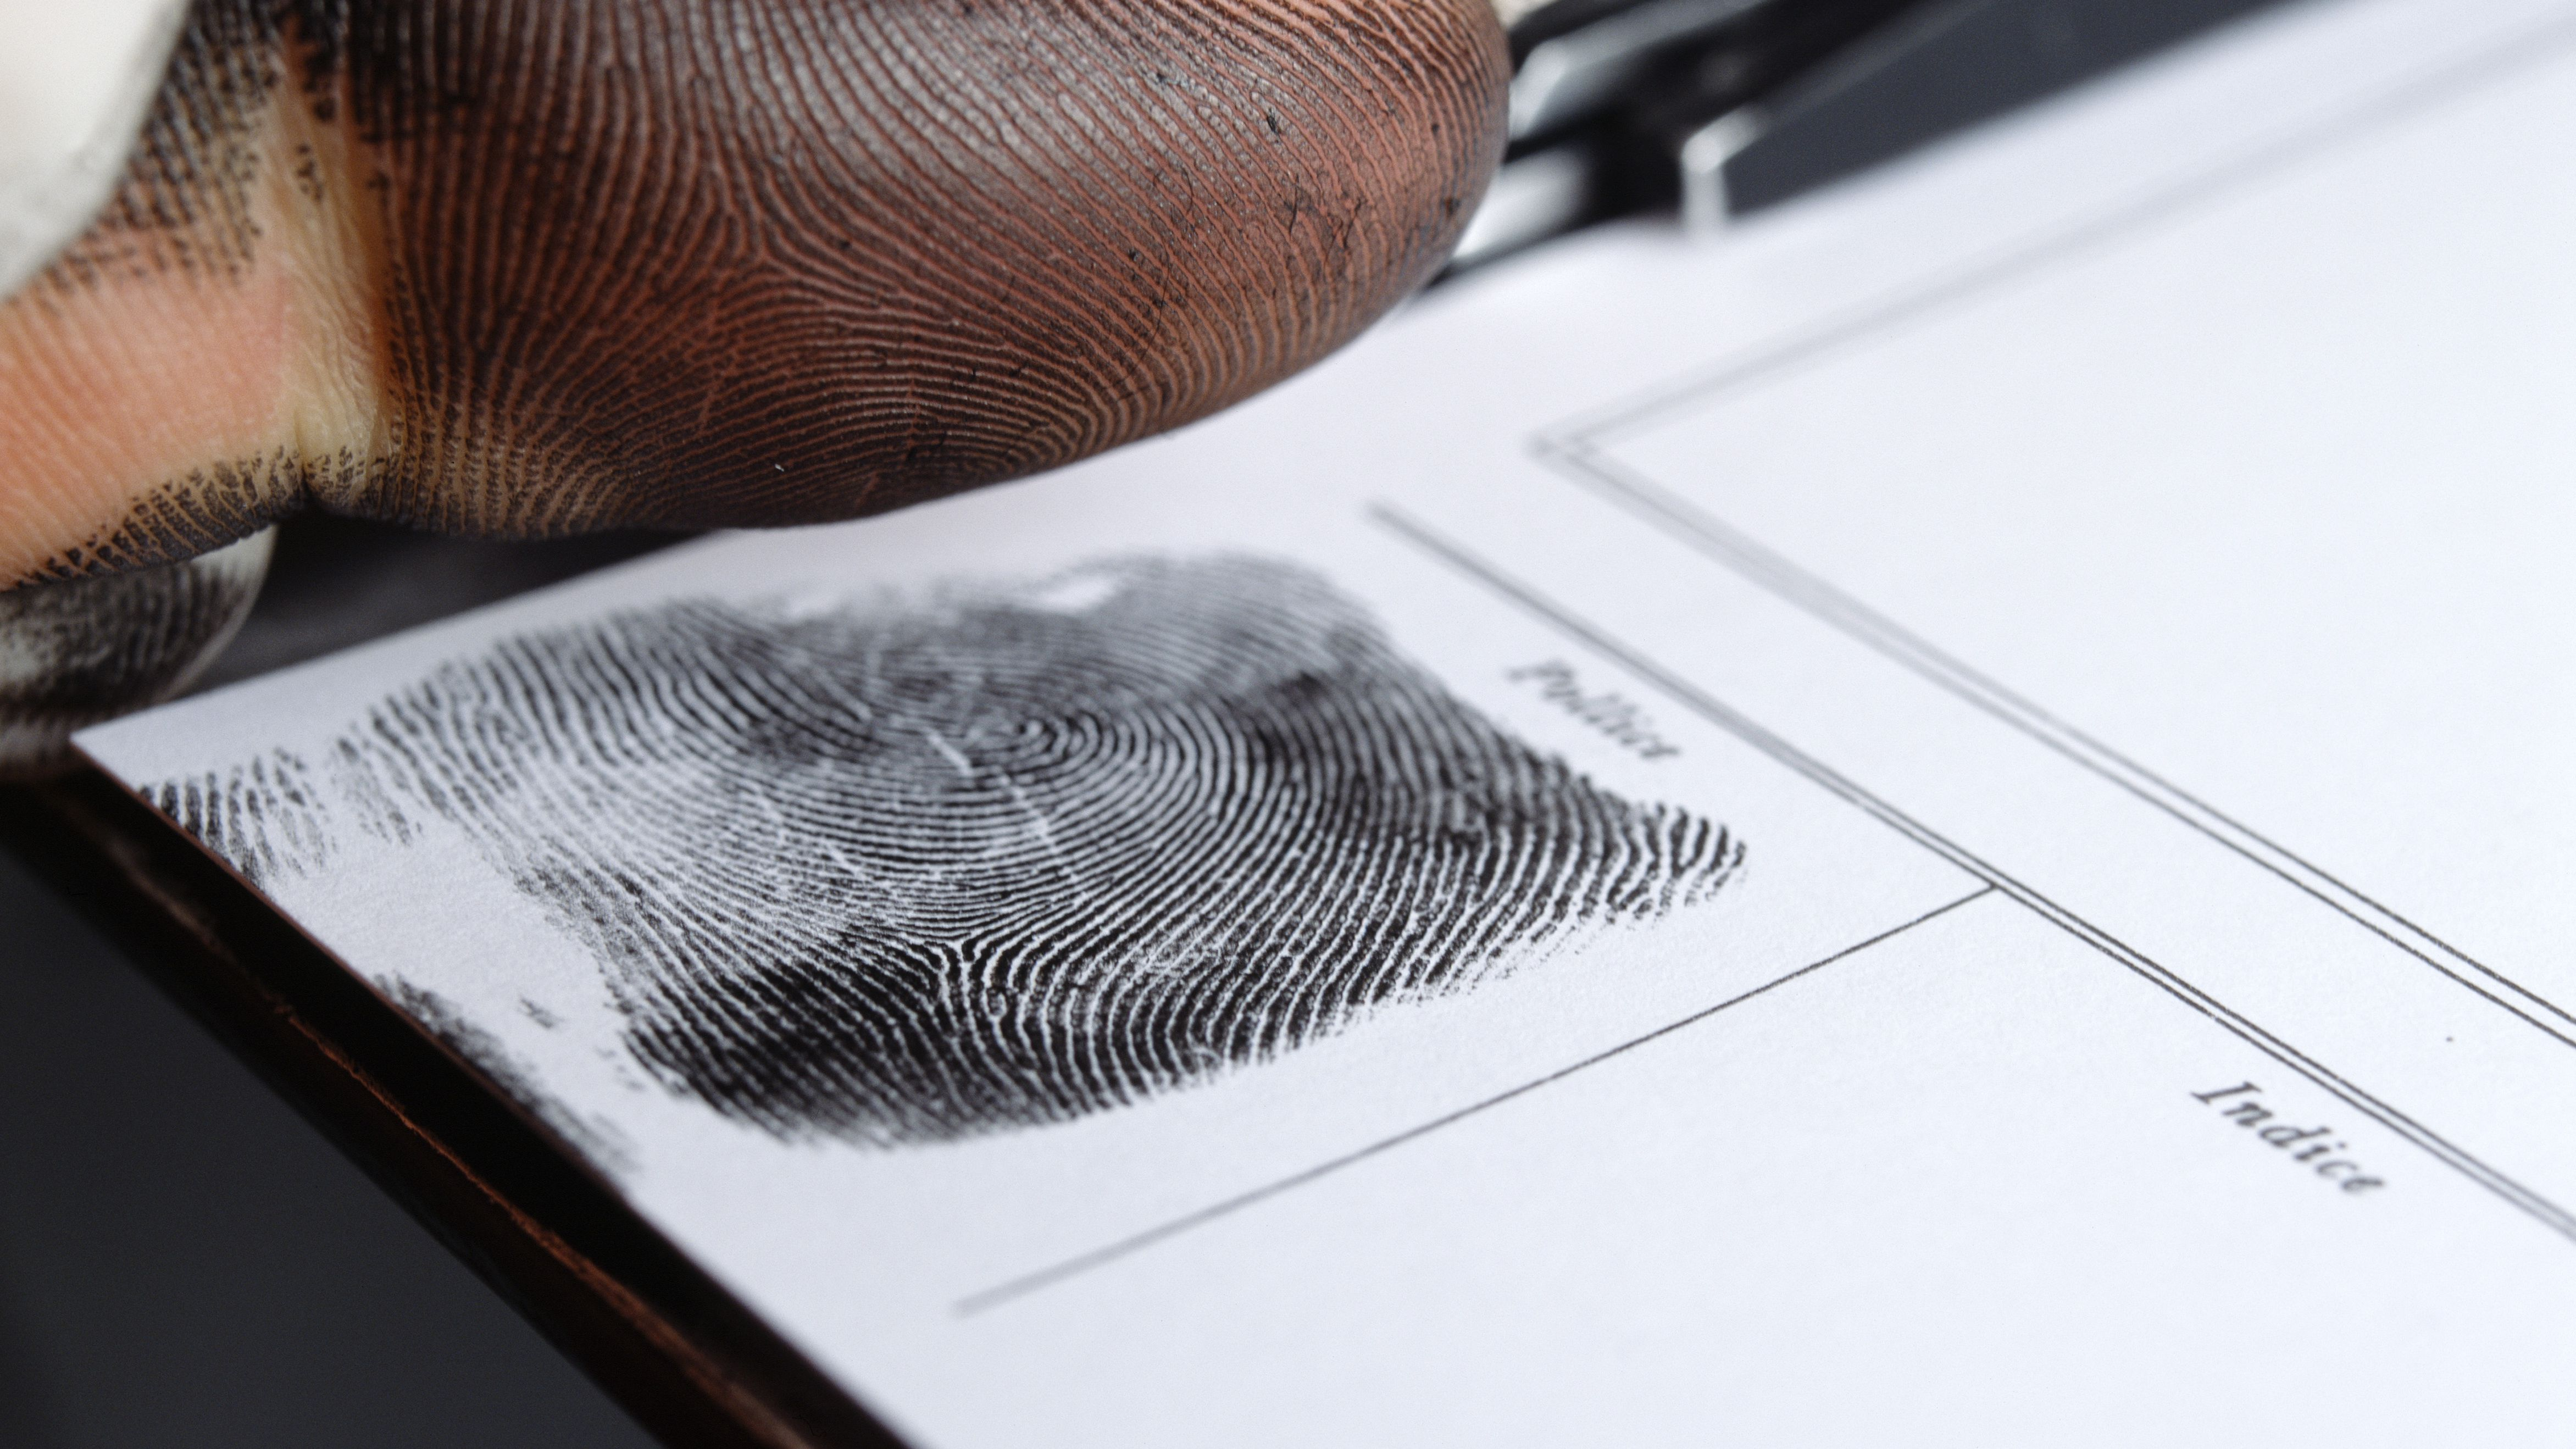 Can Job Applications Ask About Criminal Records?